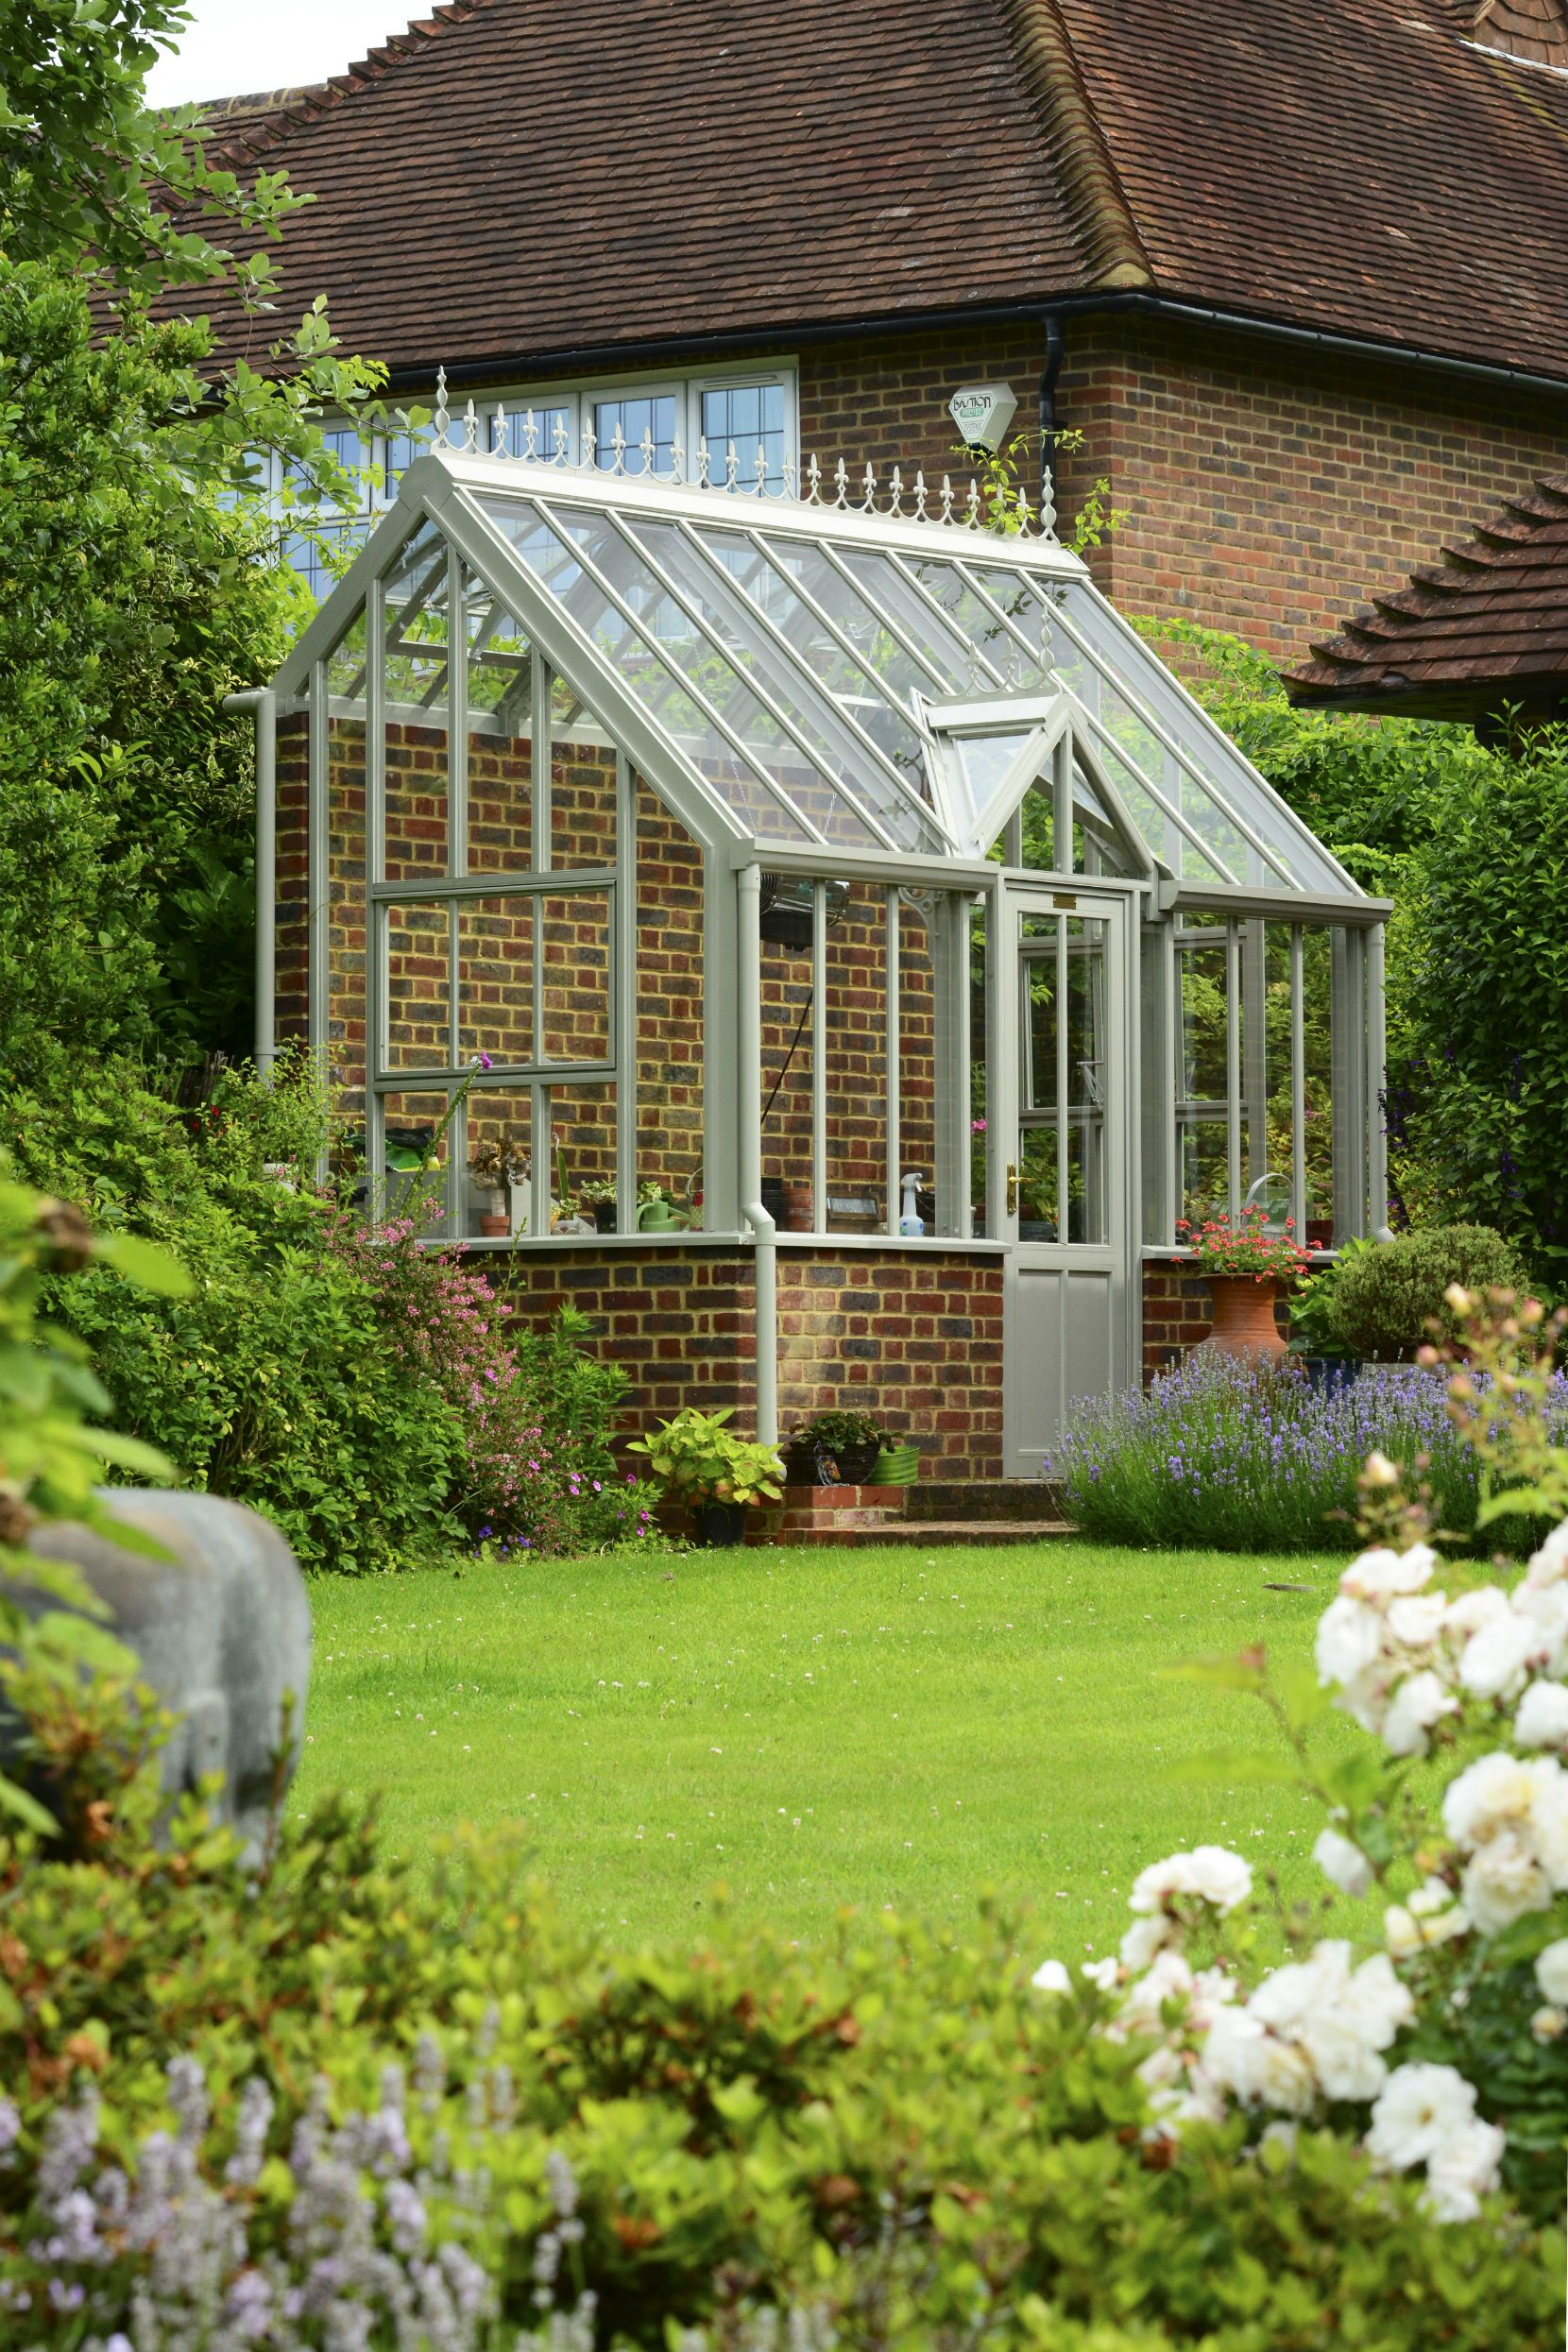 the gardening year had flowershow everyone home frameless first trends inspired eight pure and flower image greenhouse life this chelsea garden rhs design talking by show